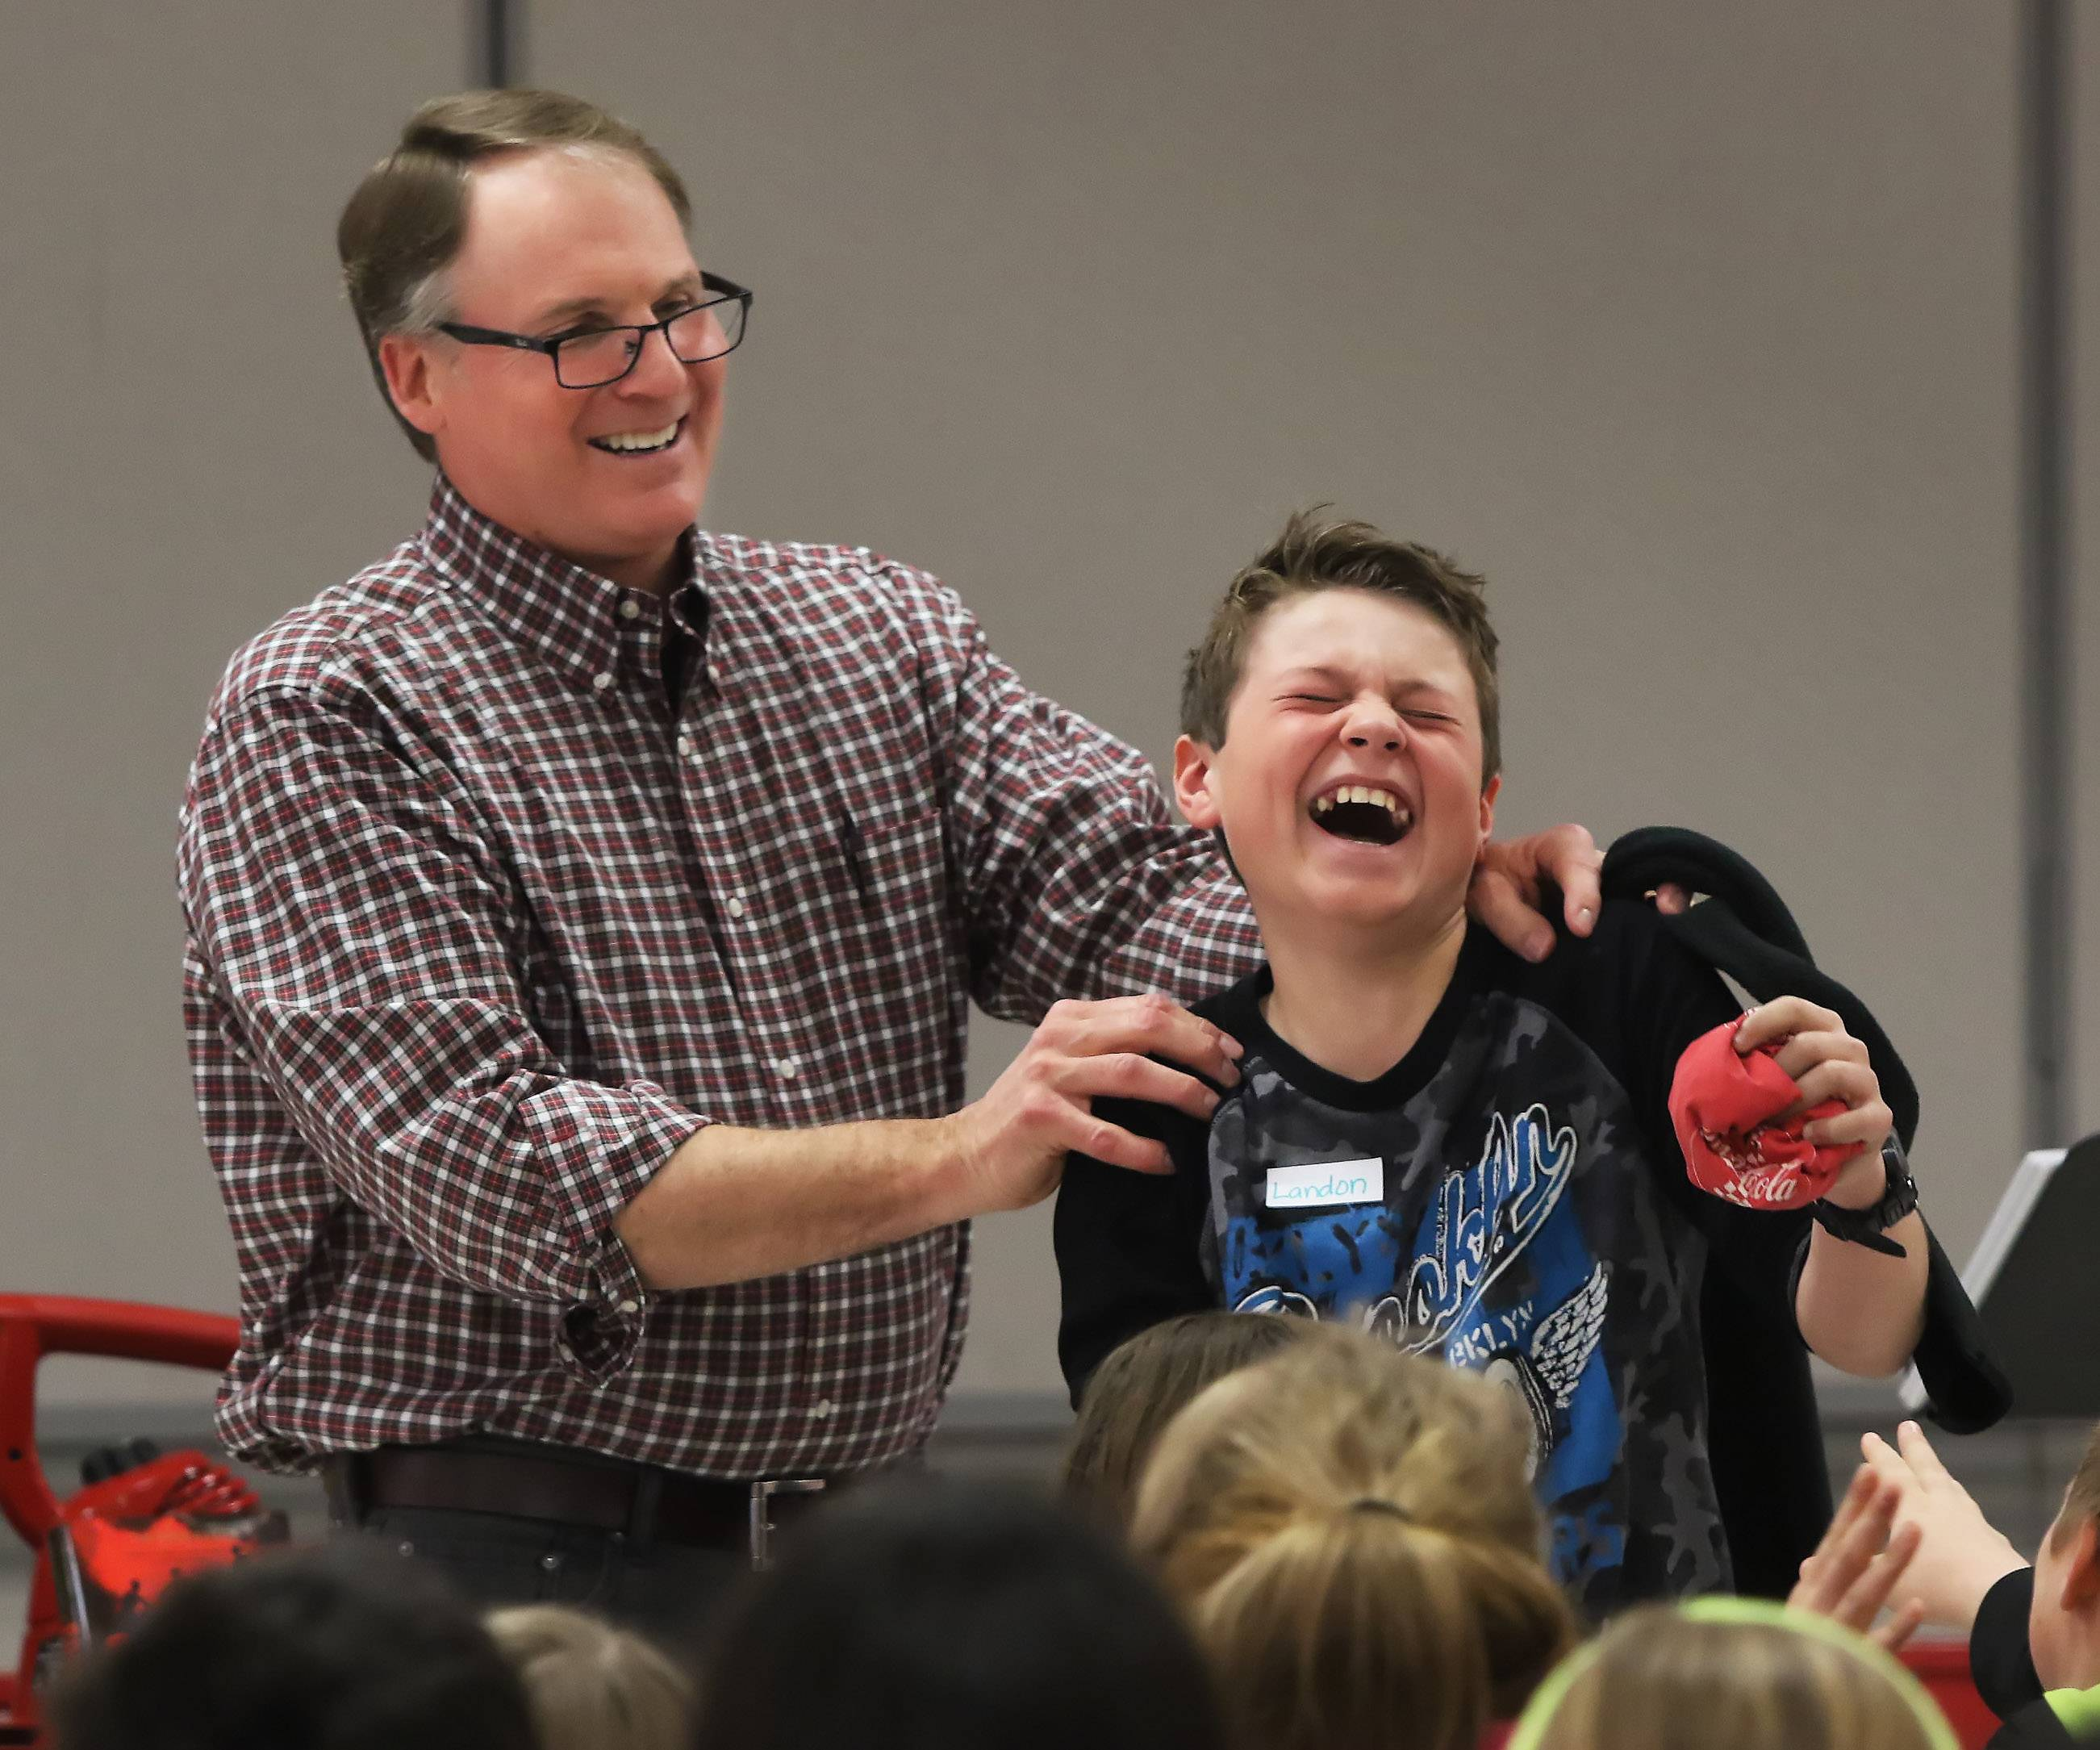 Fifth grader Landon Schultz laughs after participating in a demonstration with author Tim Shoemaker, who spoke with students Tuesday at Stanton School in Fox Lake. Shoemaker writes mystery books intended for middle school students.